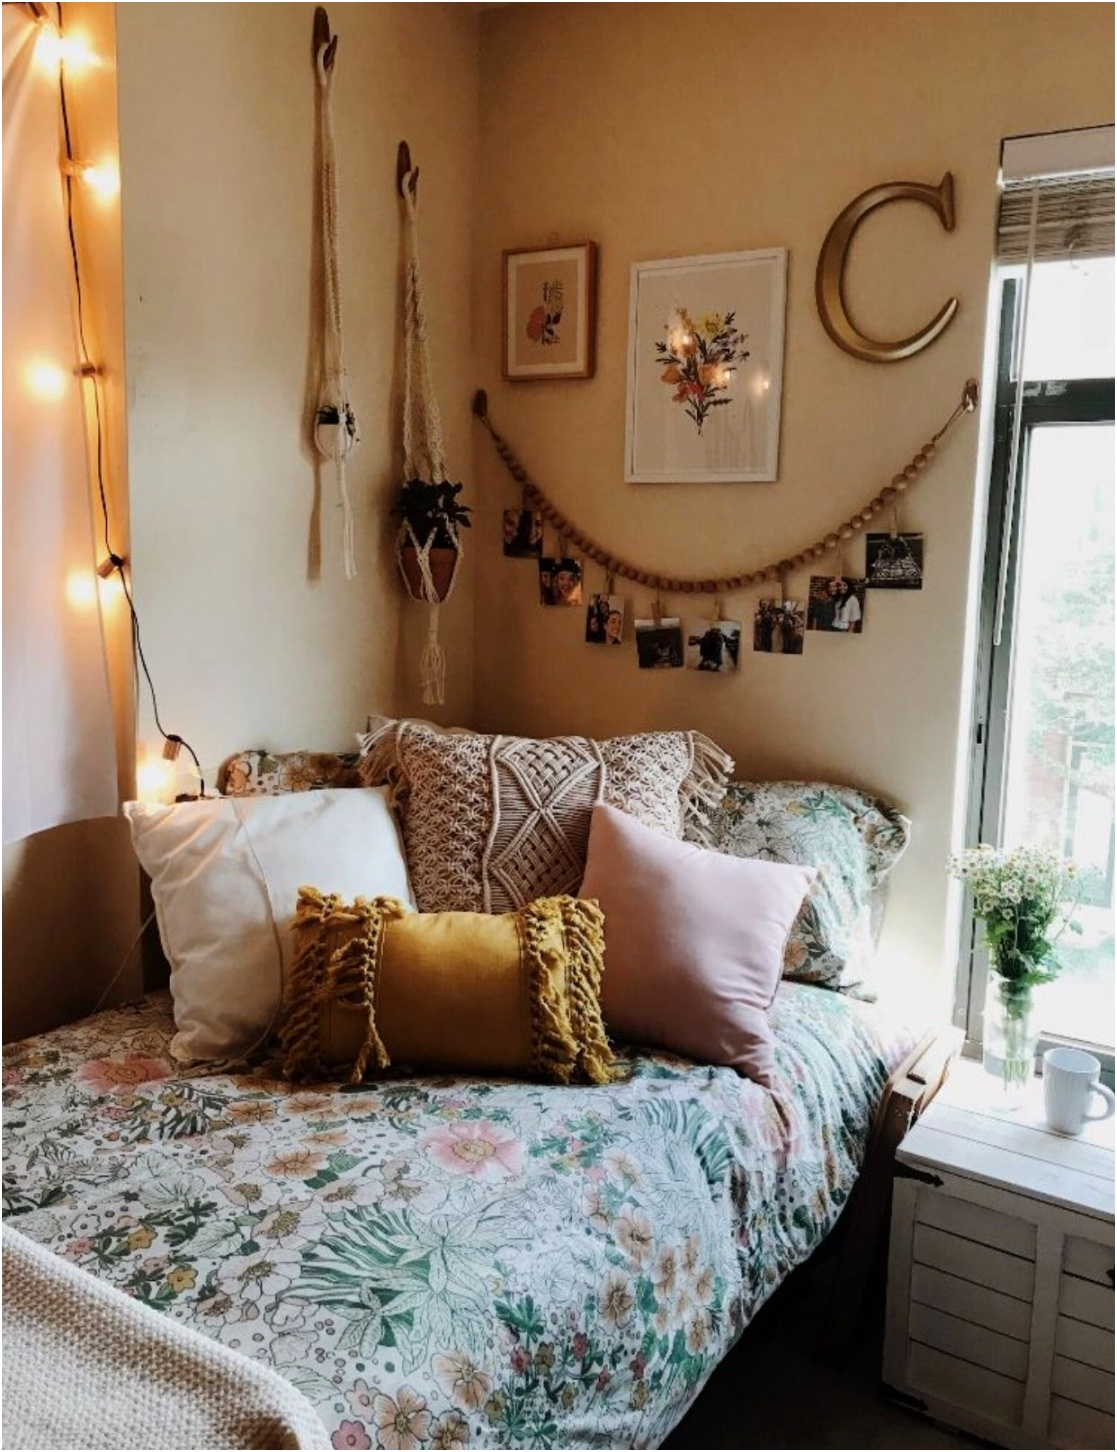 new orleans bedroom decorating ideas decoration 2016 england new bedroom decorating ideas relaxing romantic couples